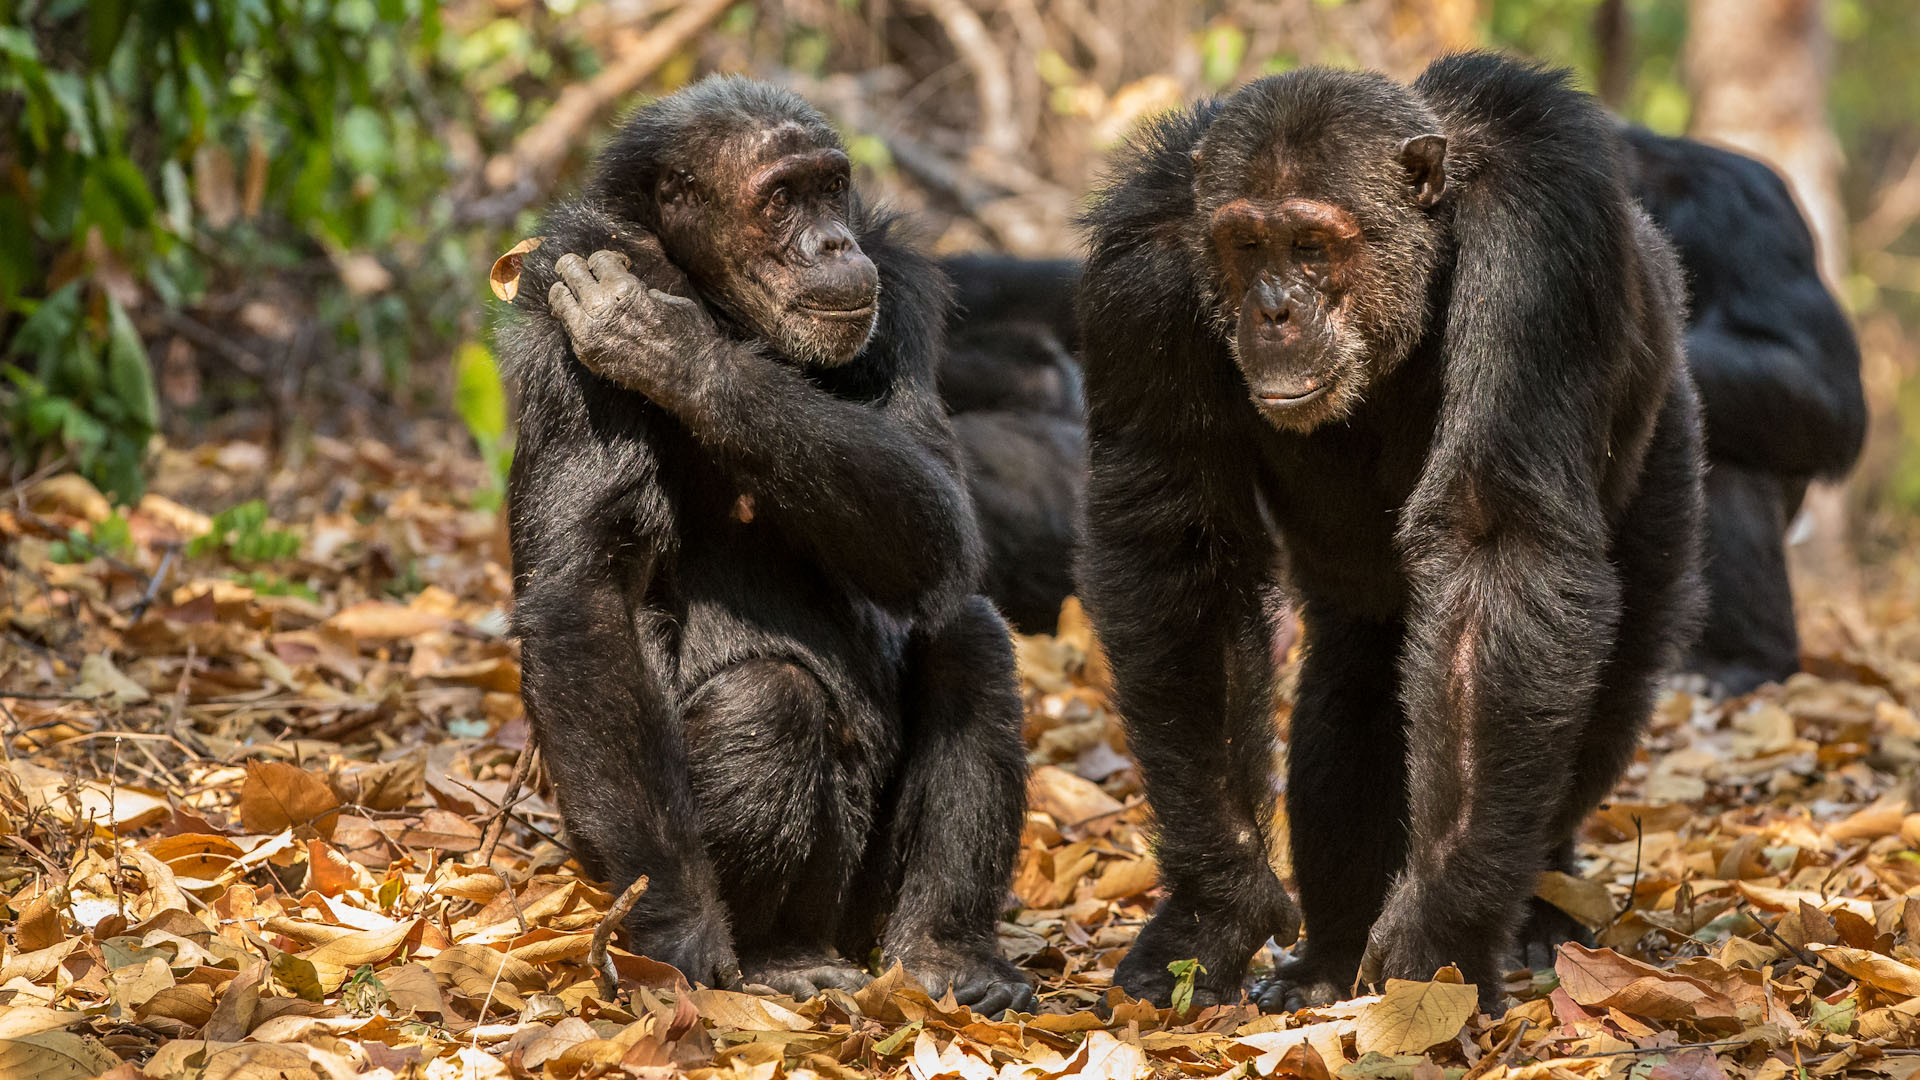 Chimpanzees can recognize one another by their buttocks similarly to the way we recognize one another by our faces.